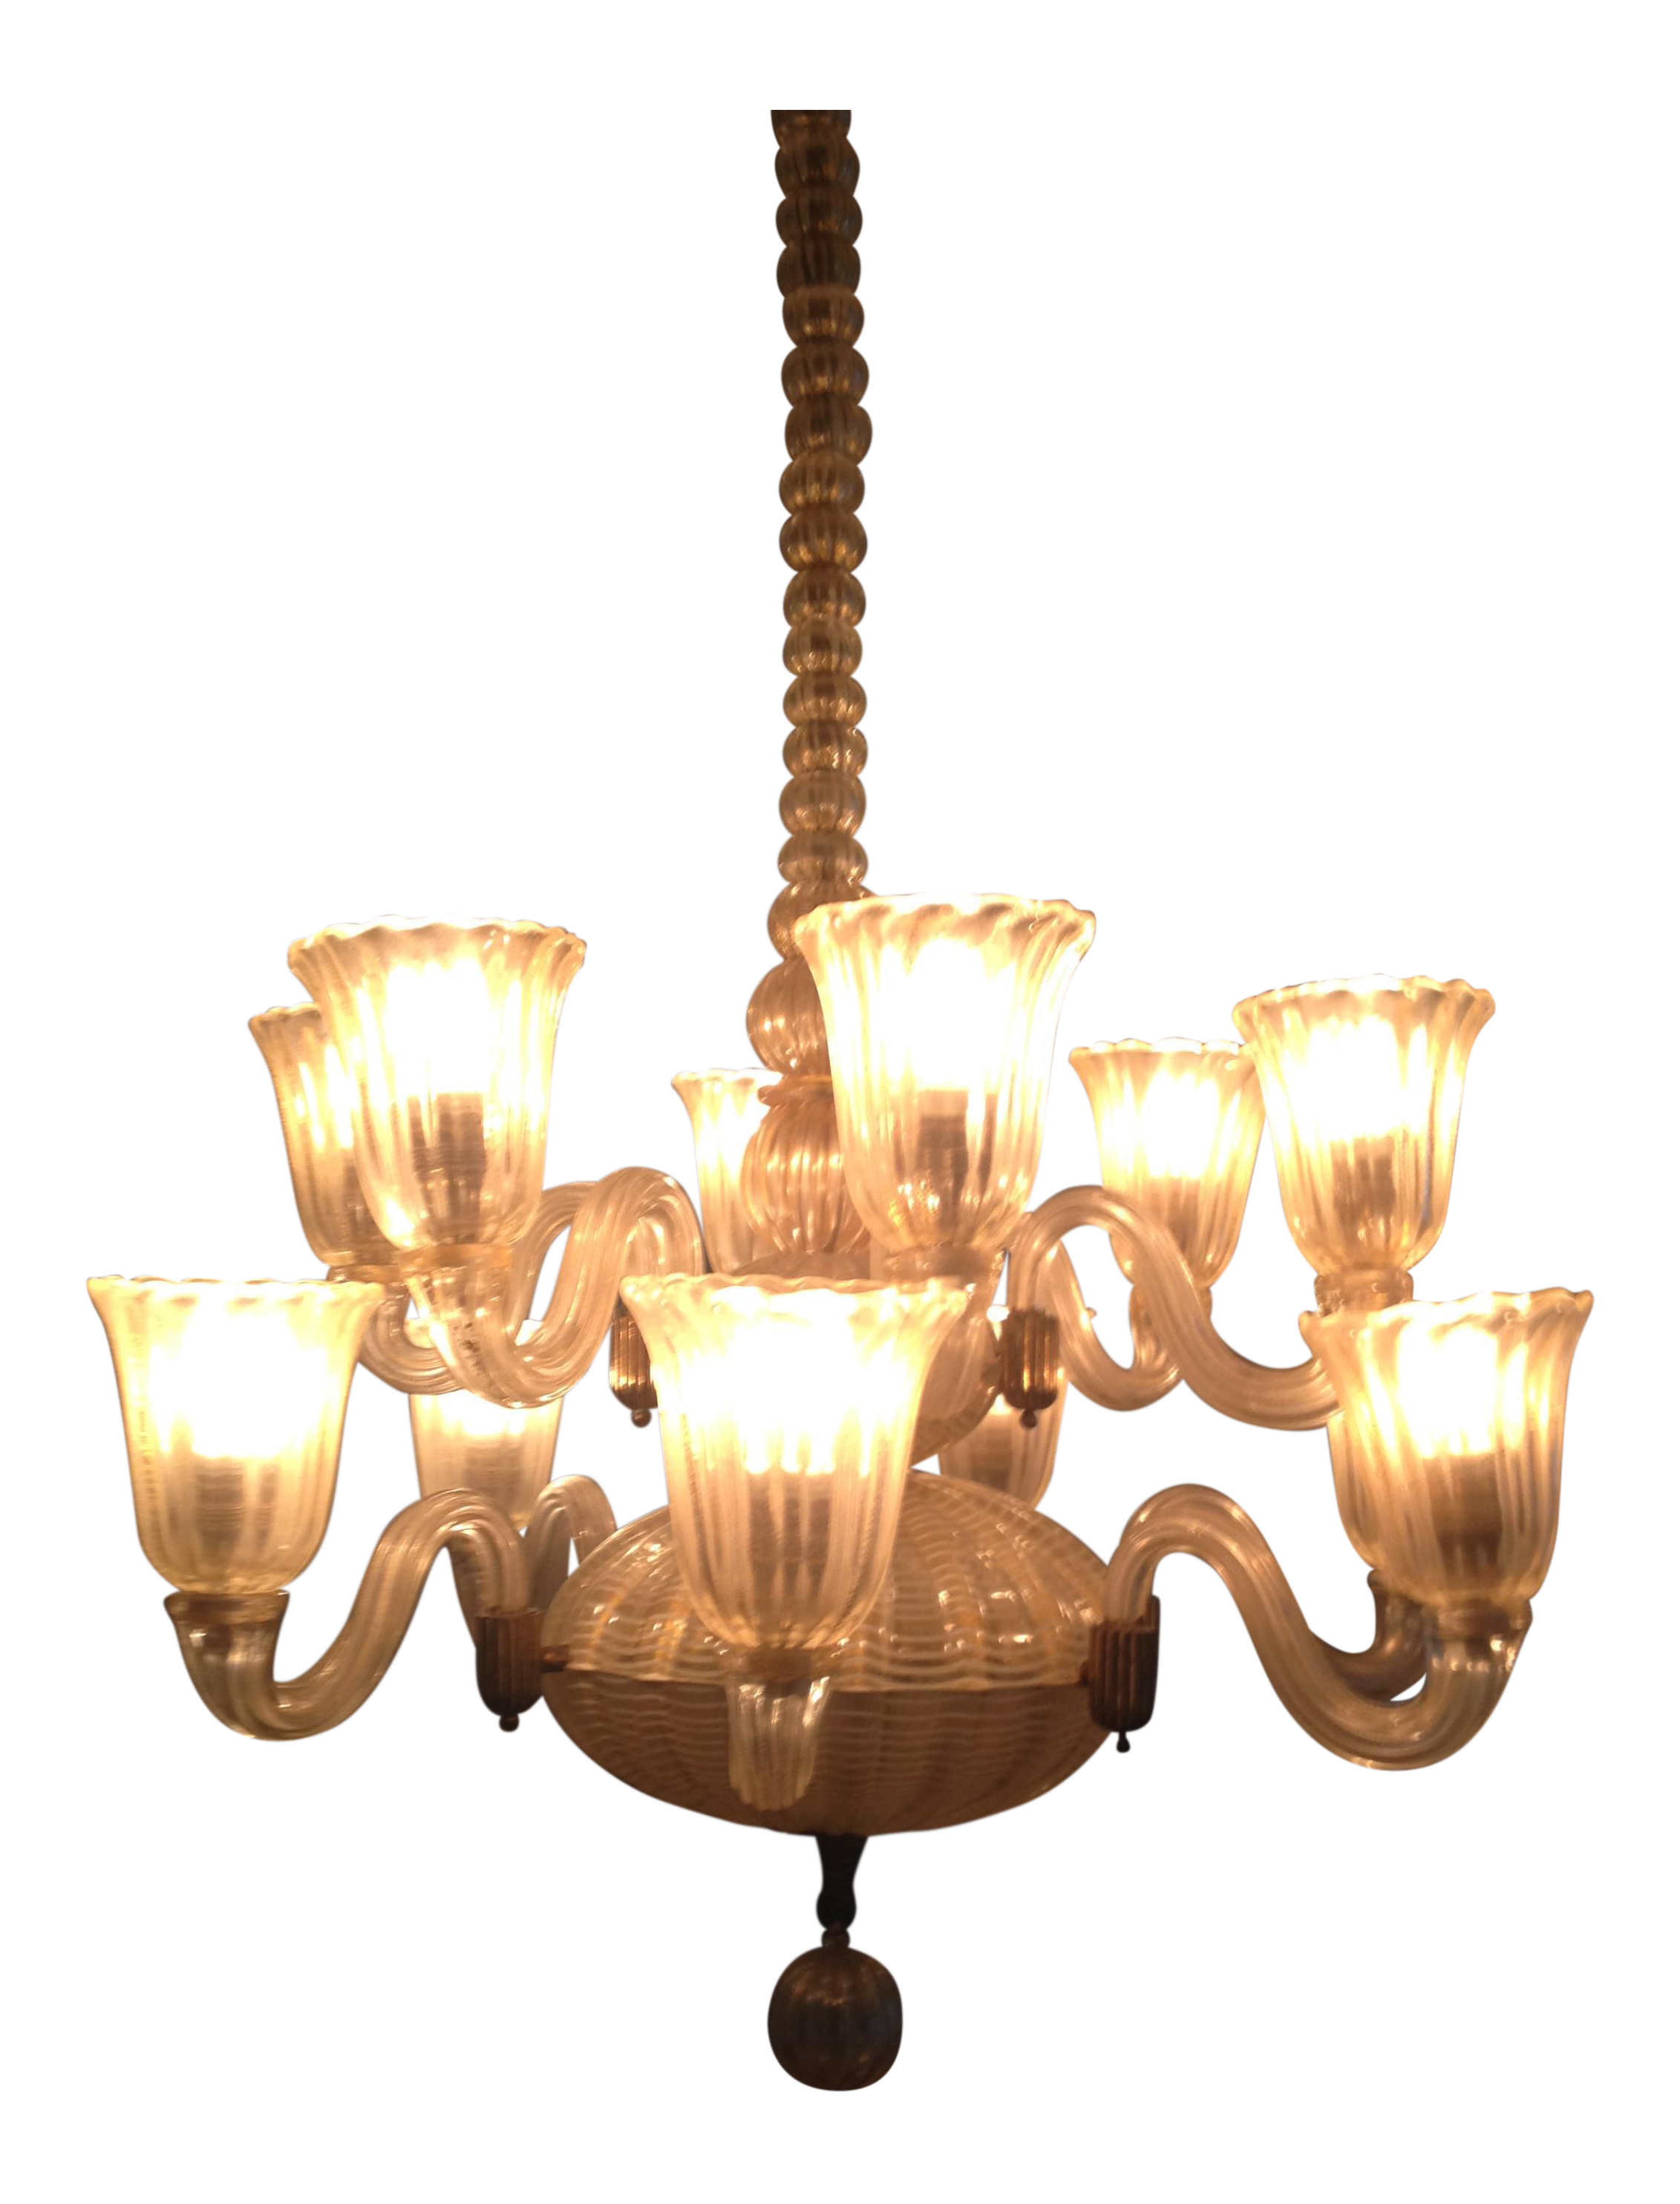 1940s 12 light venetian hand blown glass chandelier chairish for Kitchen cabinet trends 2018 combined with hand blown glass wall art